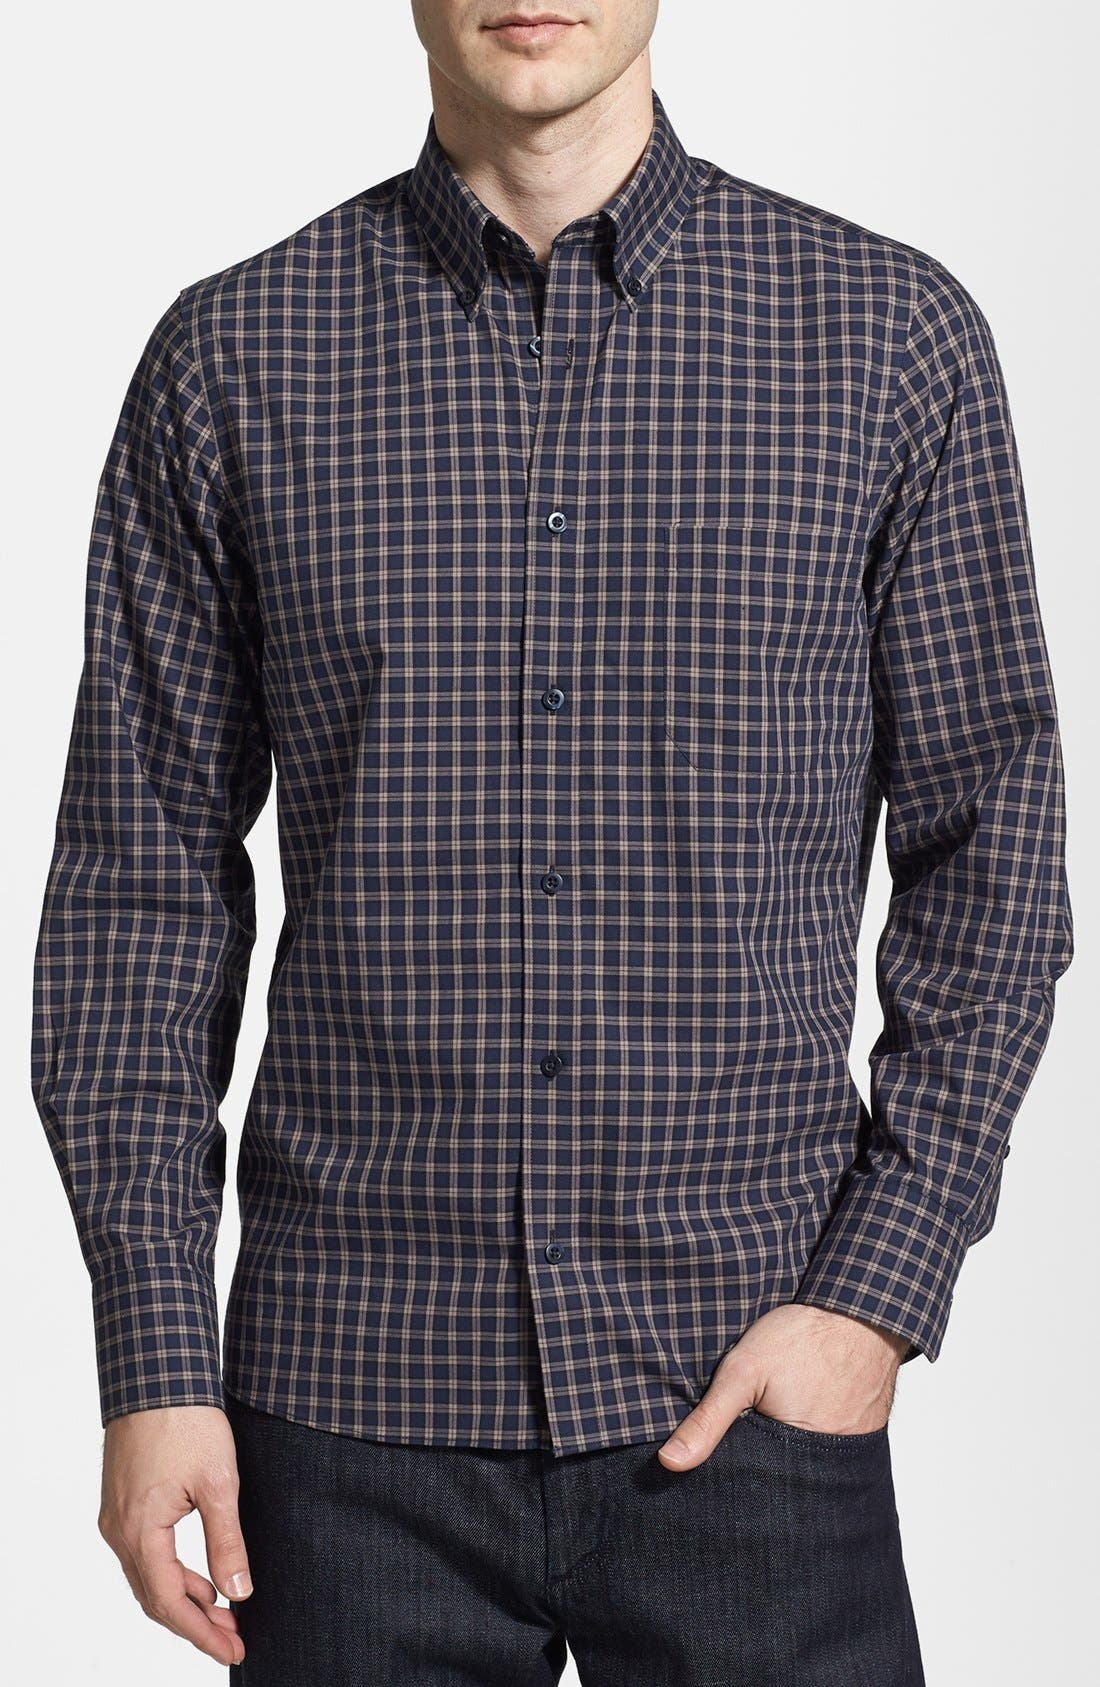 Alternate Image 1 Selected - Nordstrom Smartcare™ Trim Fit Plaid Sport Shirt